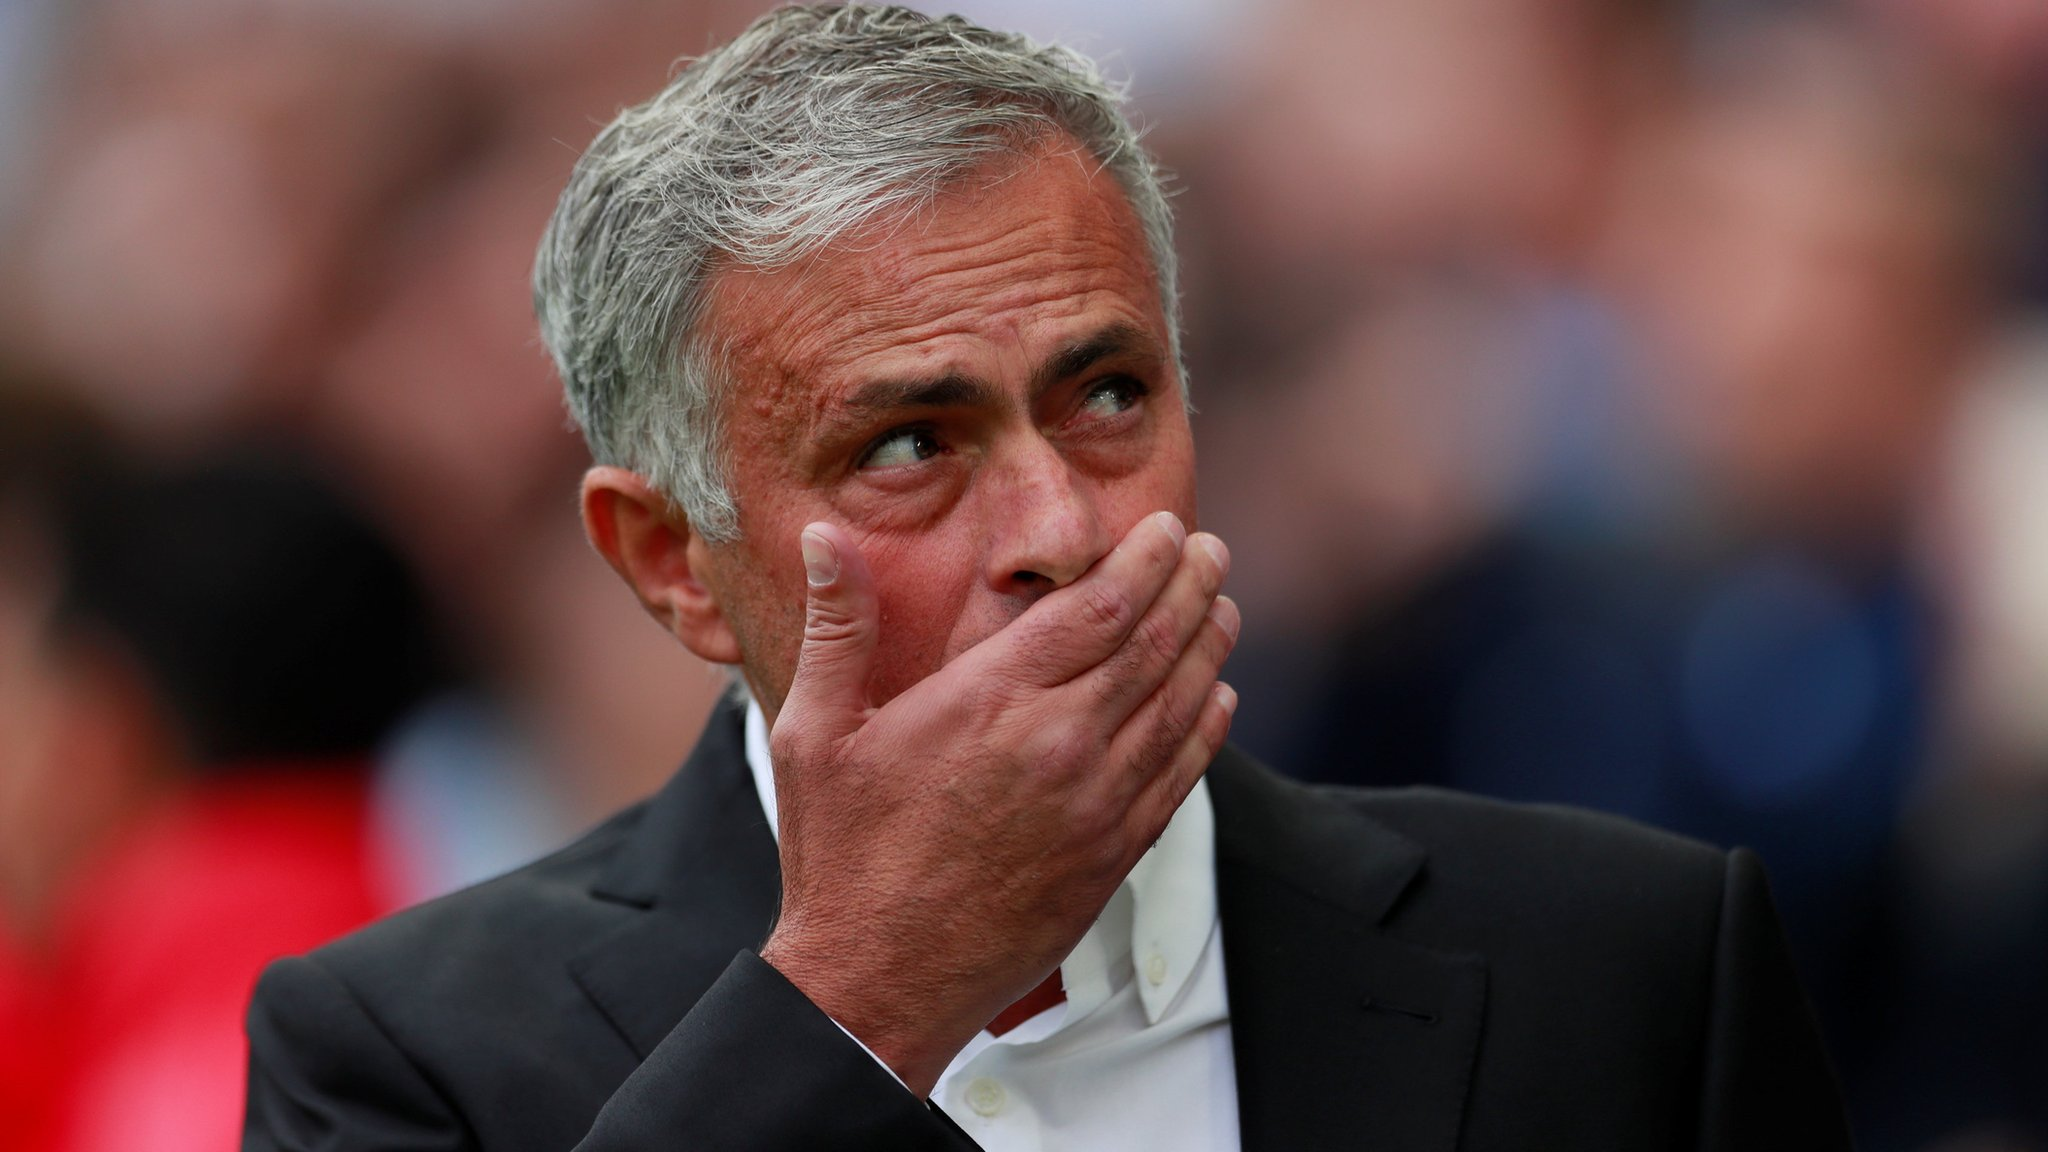 Manchester United: Is Jose Mourinho's third-season syndrome a myth or about to unfold?